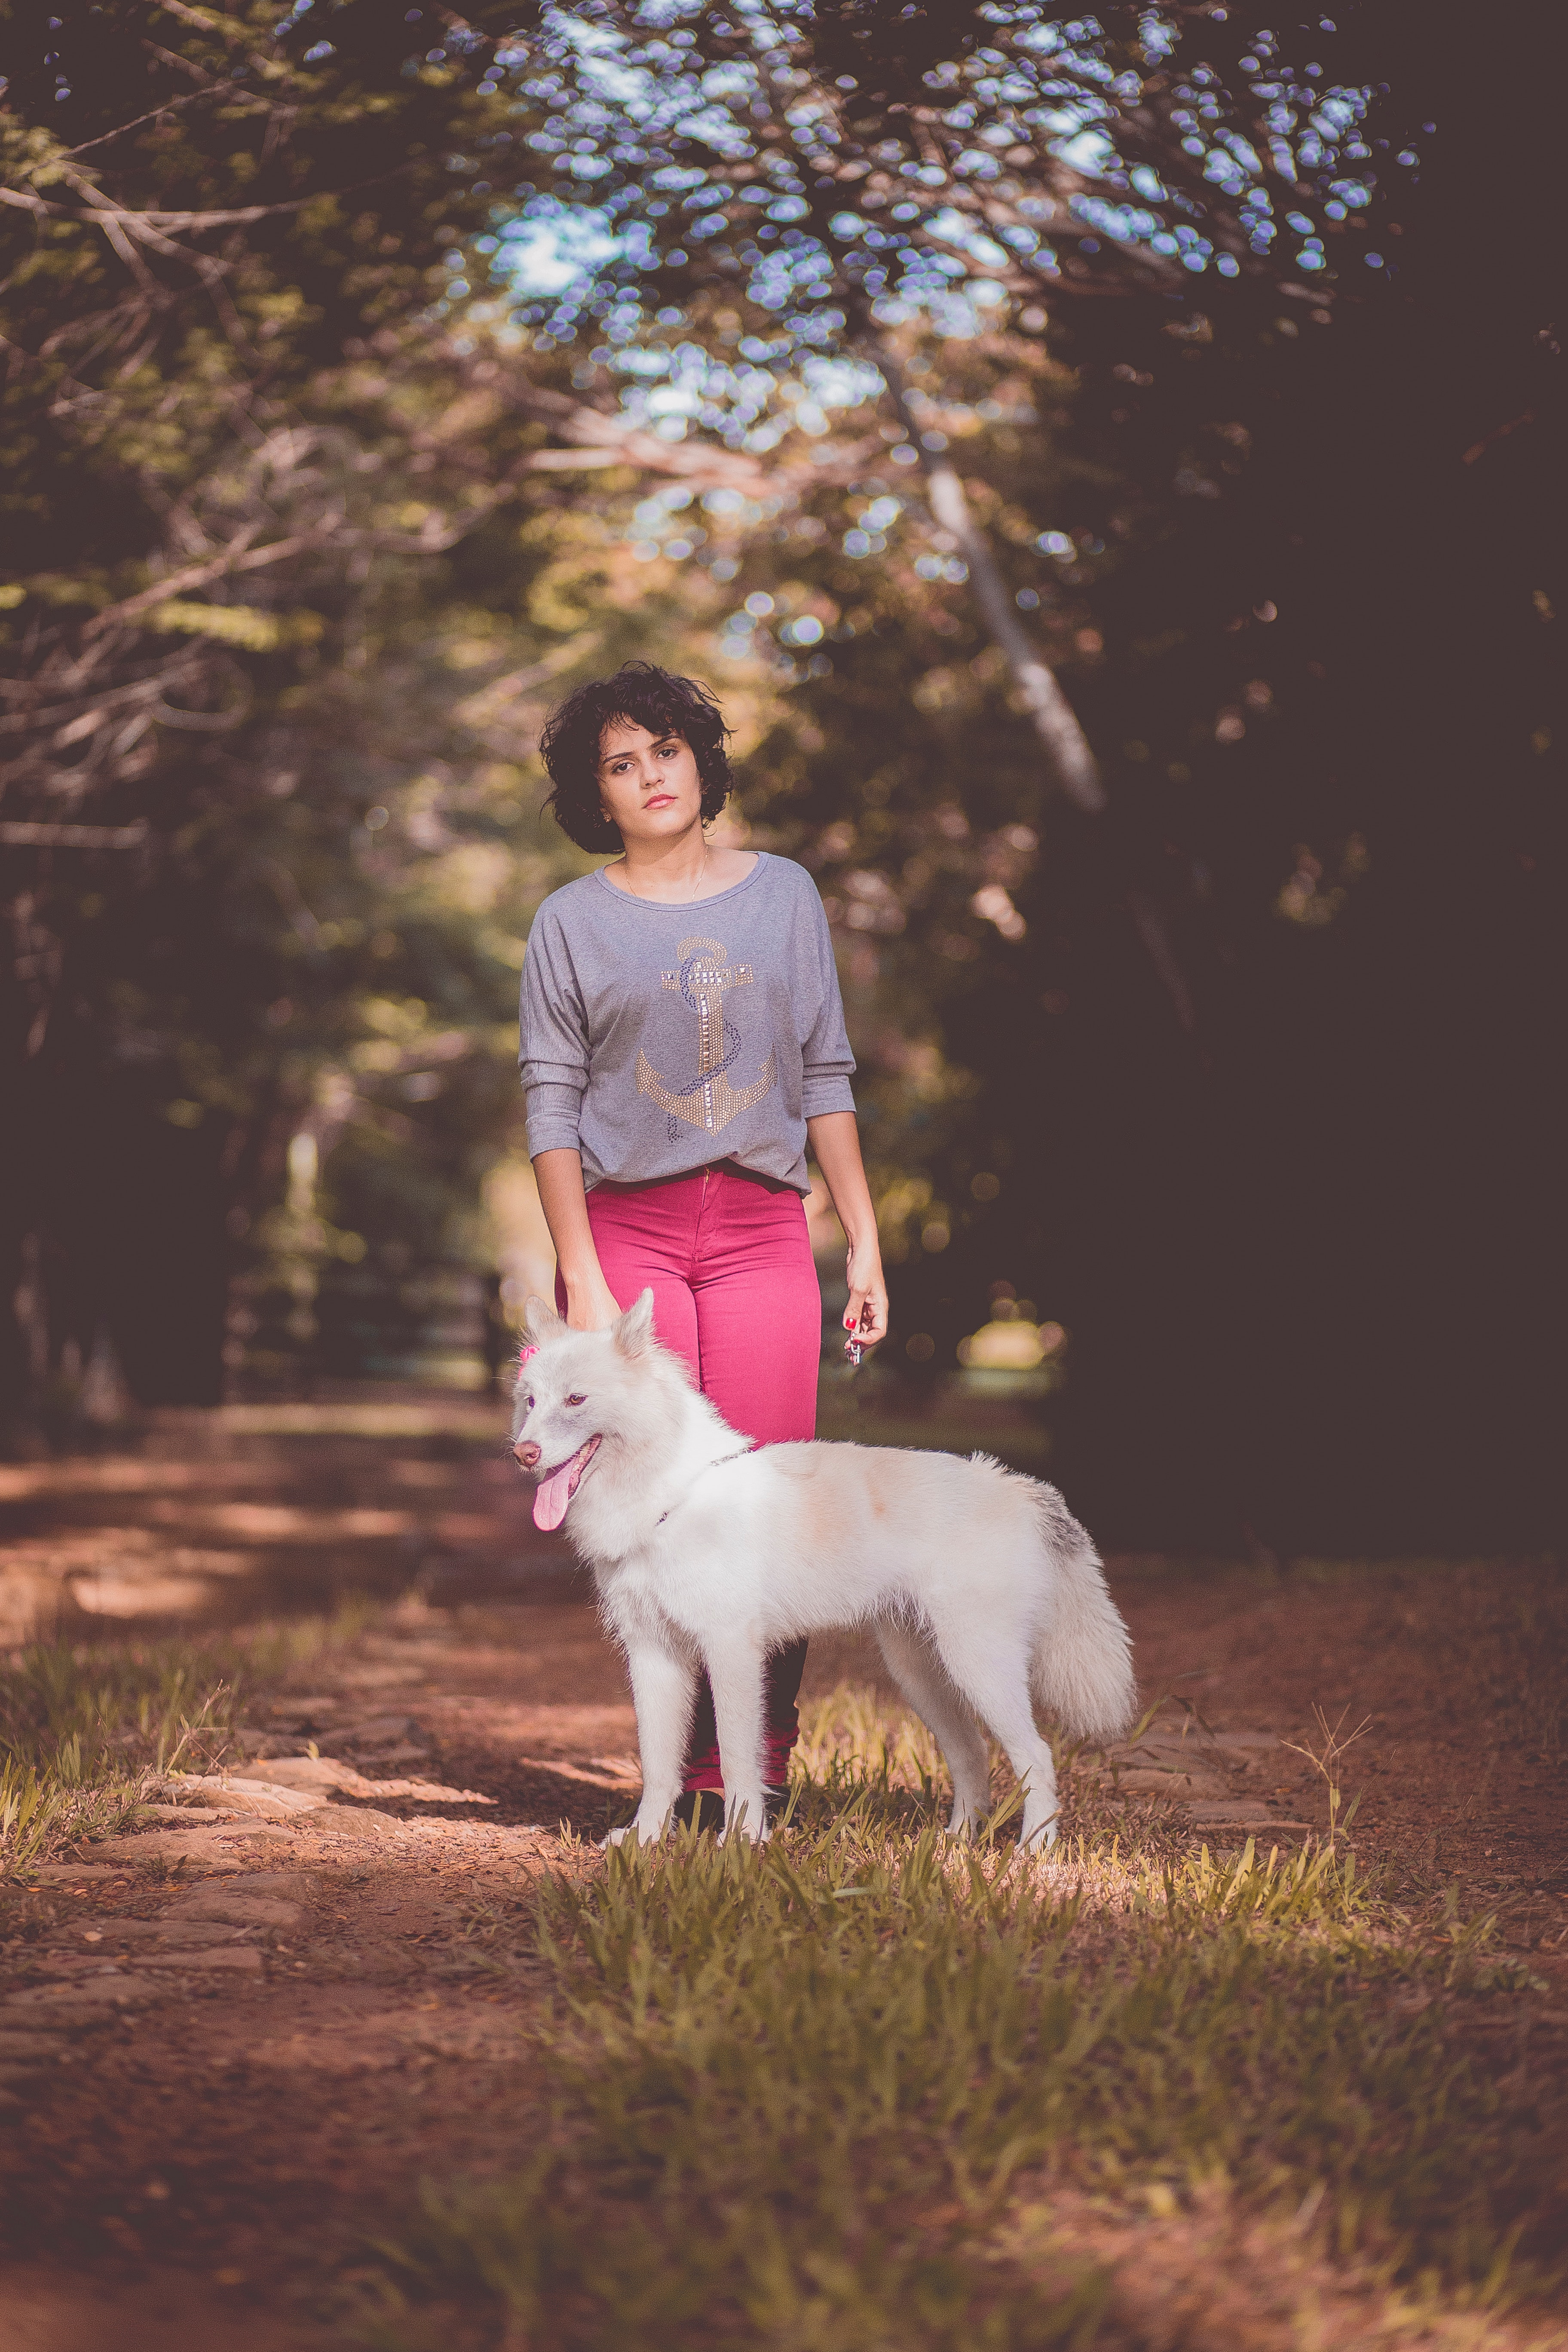 Woman in Purple Long Sleeve Shirt and Pink Jeans Standing Next to White German Spitz With Background of Green Trees during Day, Adorable, Nature photography, Wear, Trees, HQ Photo